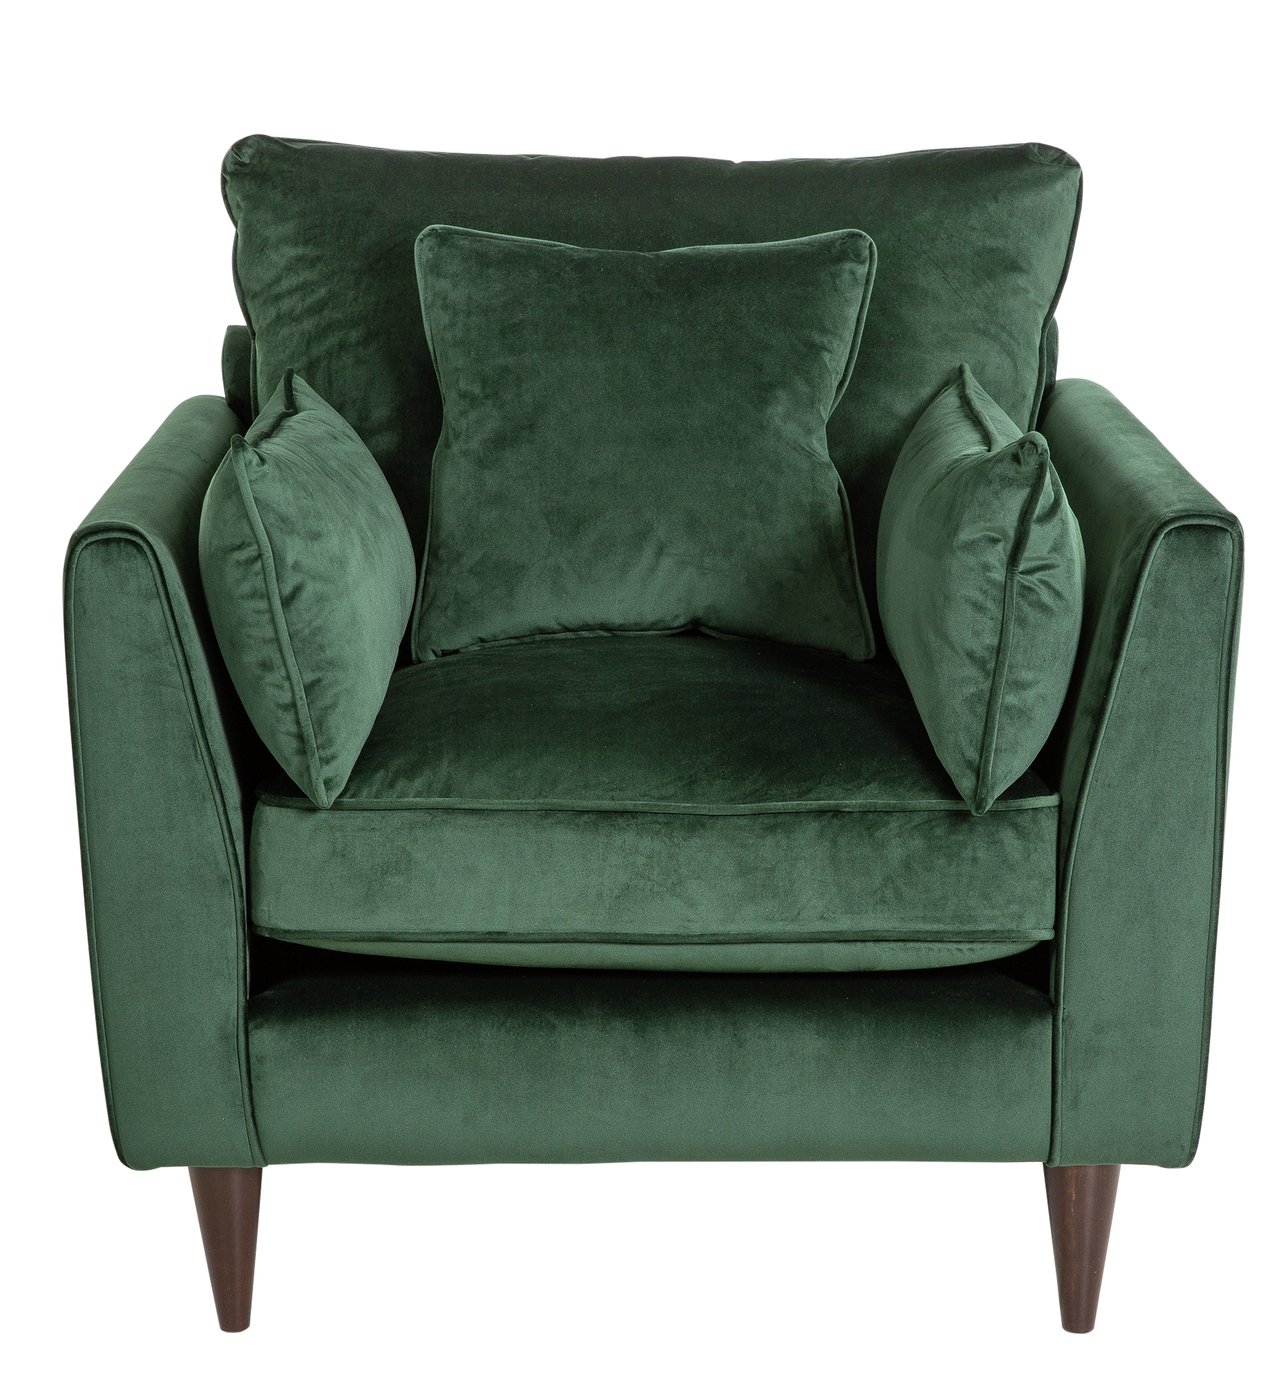 Buy Argos Home Hector Velvet Armchair   Green | Armchairs And Chairs | Argos